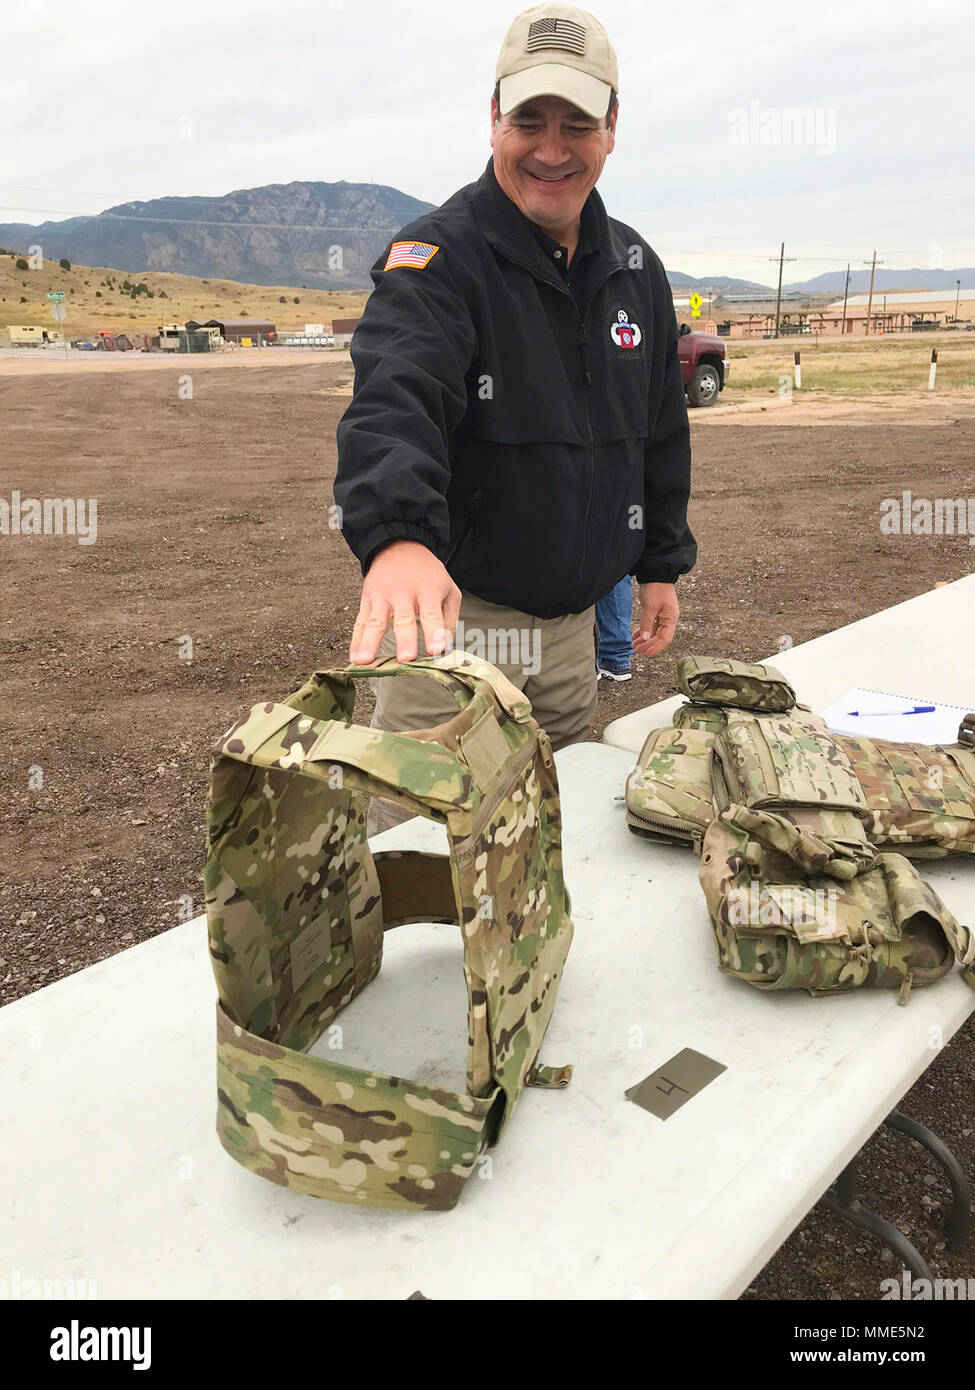 Michael Spencer, a new equipment trainer from Project Manager Soldier Protection Individual Equipment at Fort Bragg, N.C., demonstrates how the Modular Scalable Vest (MSV) can be separated into different configurations, during the final round of field-testing of the vest at Fort Carson, Colo., Oct. 18, 2017. Once this evaluation is complete, the vest will go into production and is expected to reach Soldiers in the field by summer of next year. (U.S. Army photo by Staff Sgt. Lance Pounds, 71st Ordnance Group (EOD), Public Affairs) - Stock Image